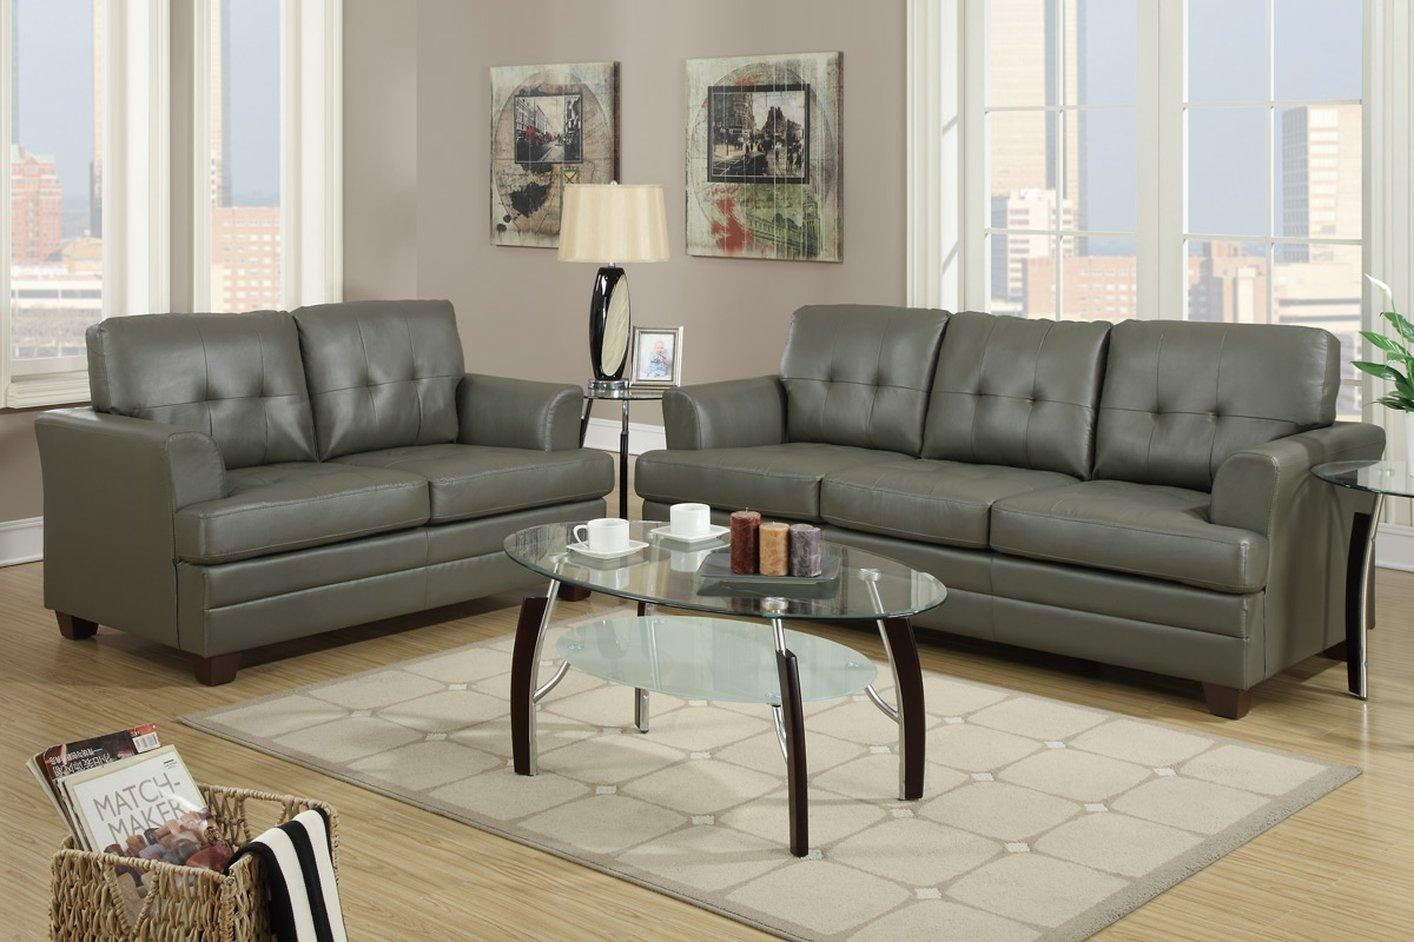 Black Leather Sofa And Loveseat Set | Tehranmix Decoration With Black Leather Sofas And Loveseats (Image 8 of 20)